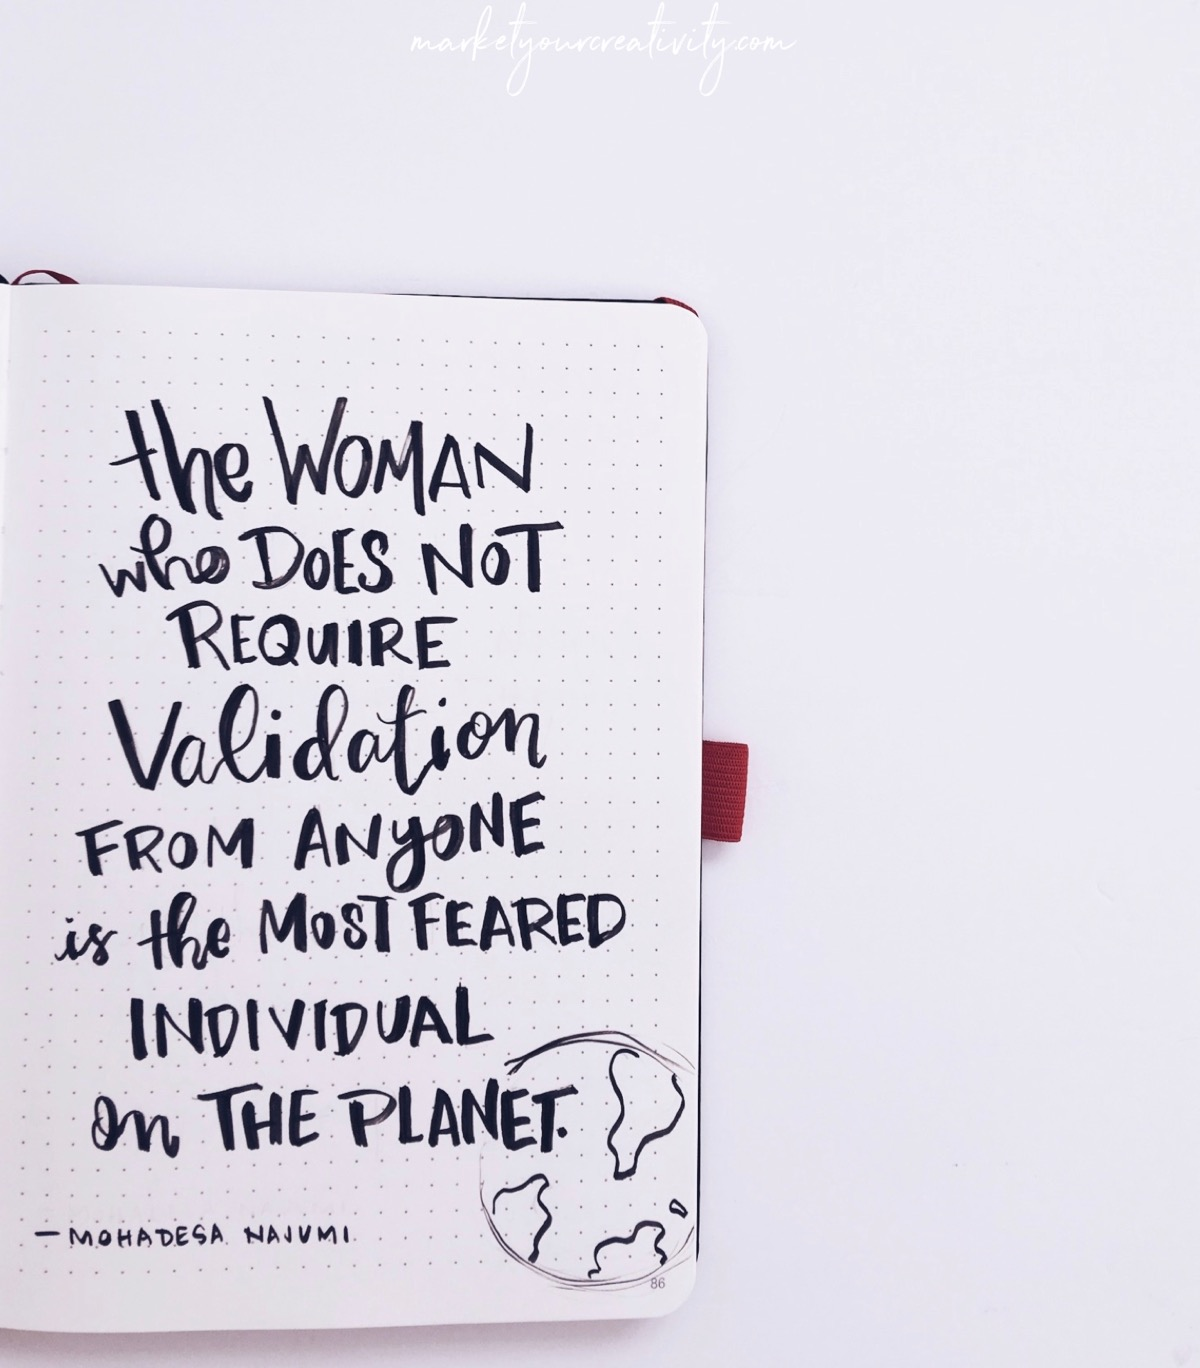 The woman who does not require validation